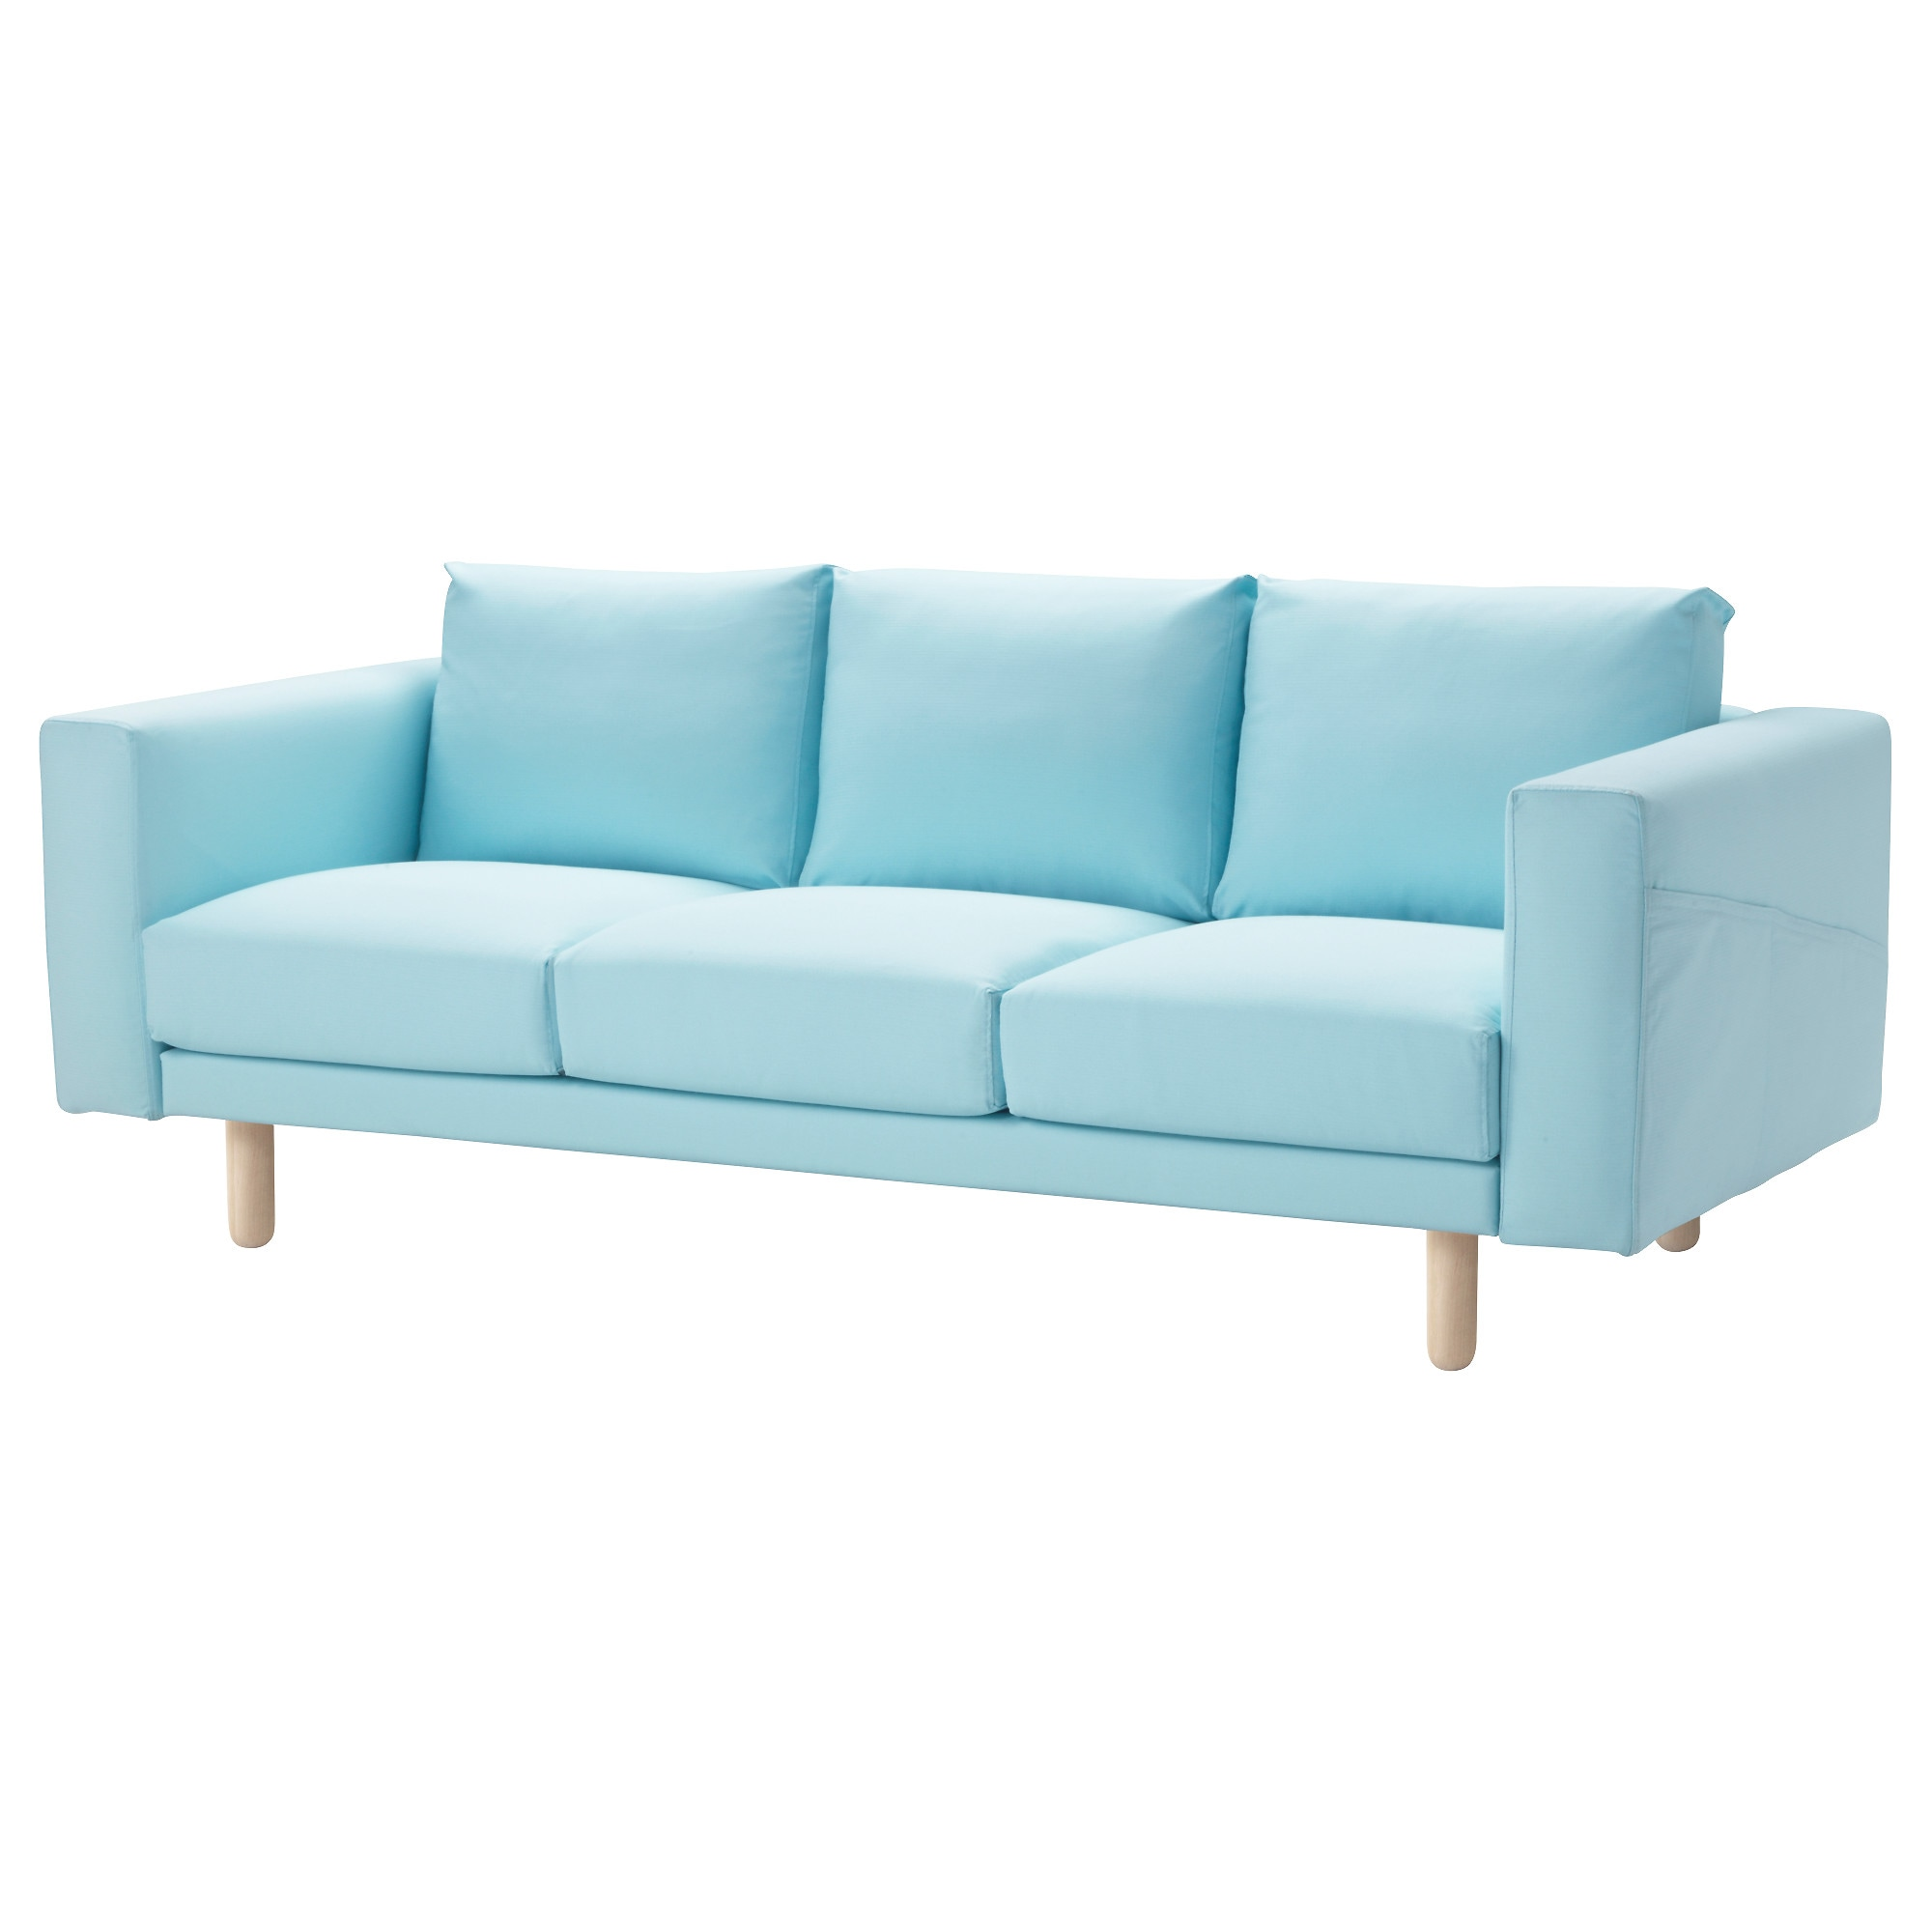 Superb NORSBORG Sofa   Edum Light Blue, Birch   IKEA